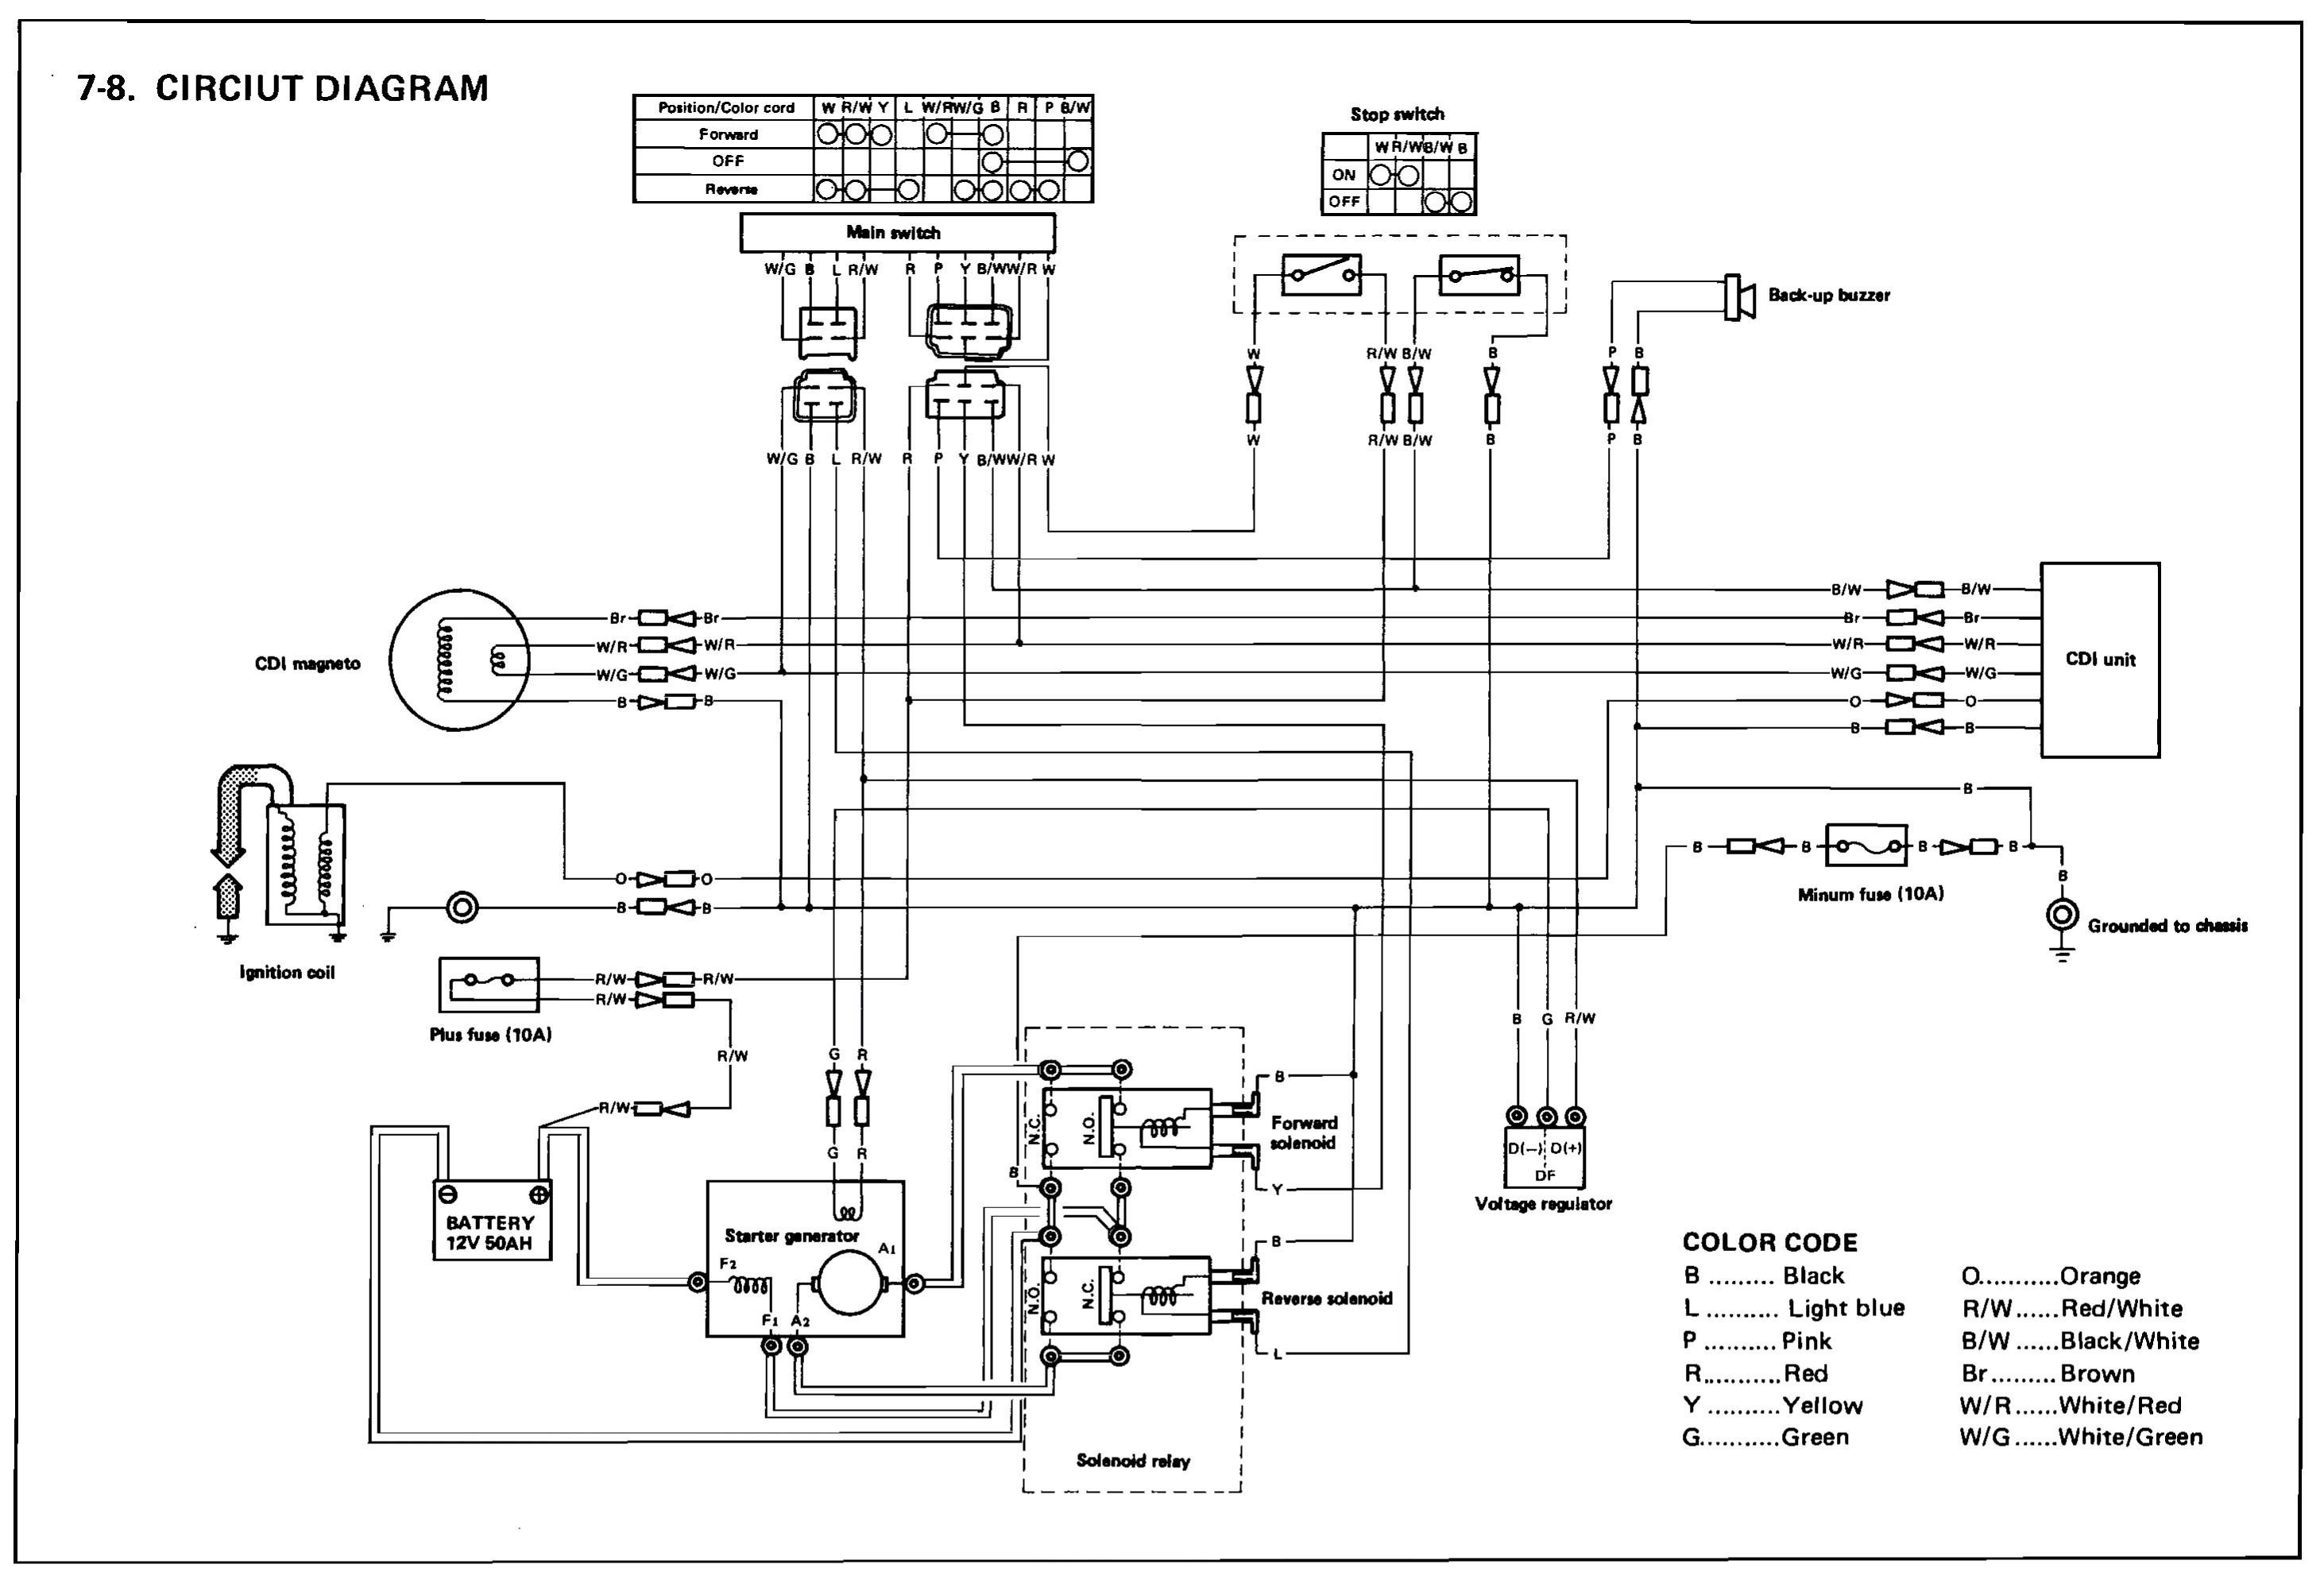 yamaha golf cart wiring diagram fo 7746  electric golf cart wiring diagram yamaha g2e golf cart yamaha golf buggy wiring diagram wiring diagram yamaha g2e golf cart